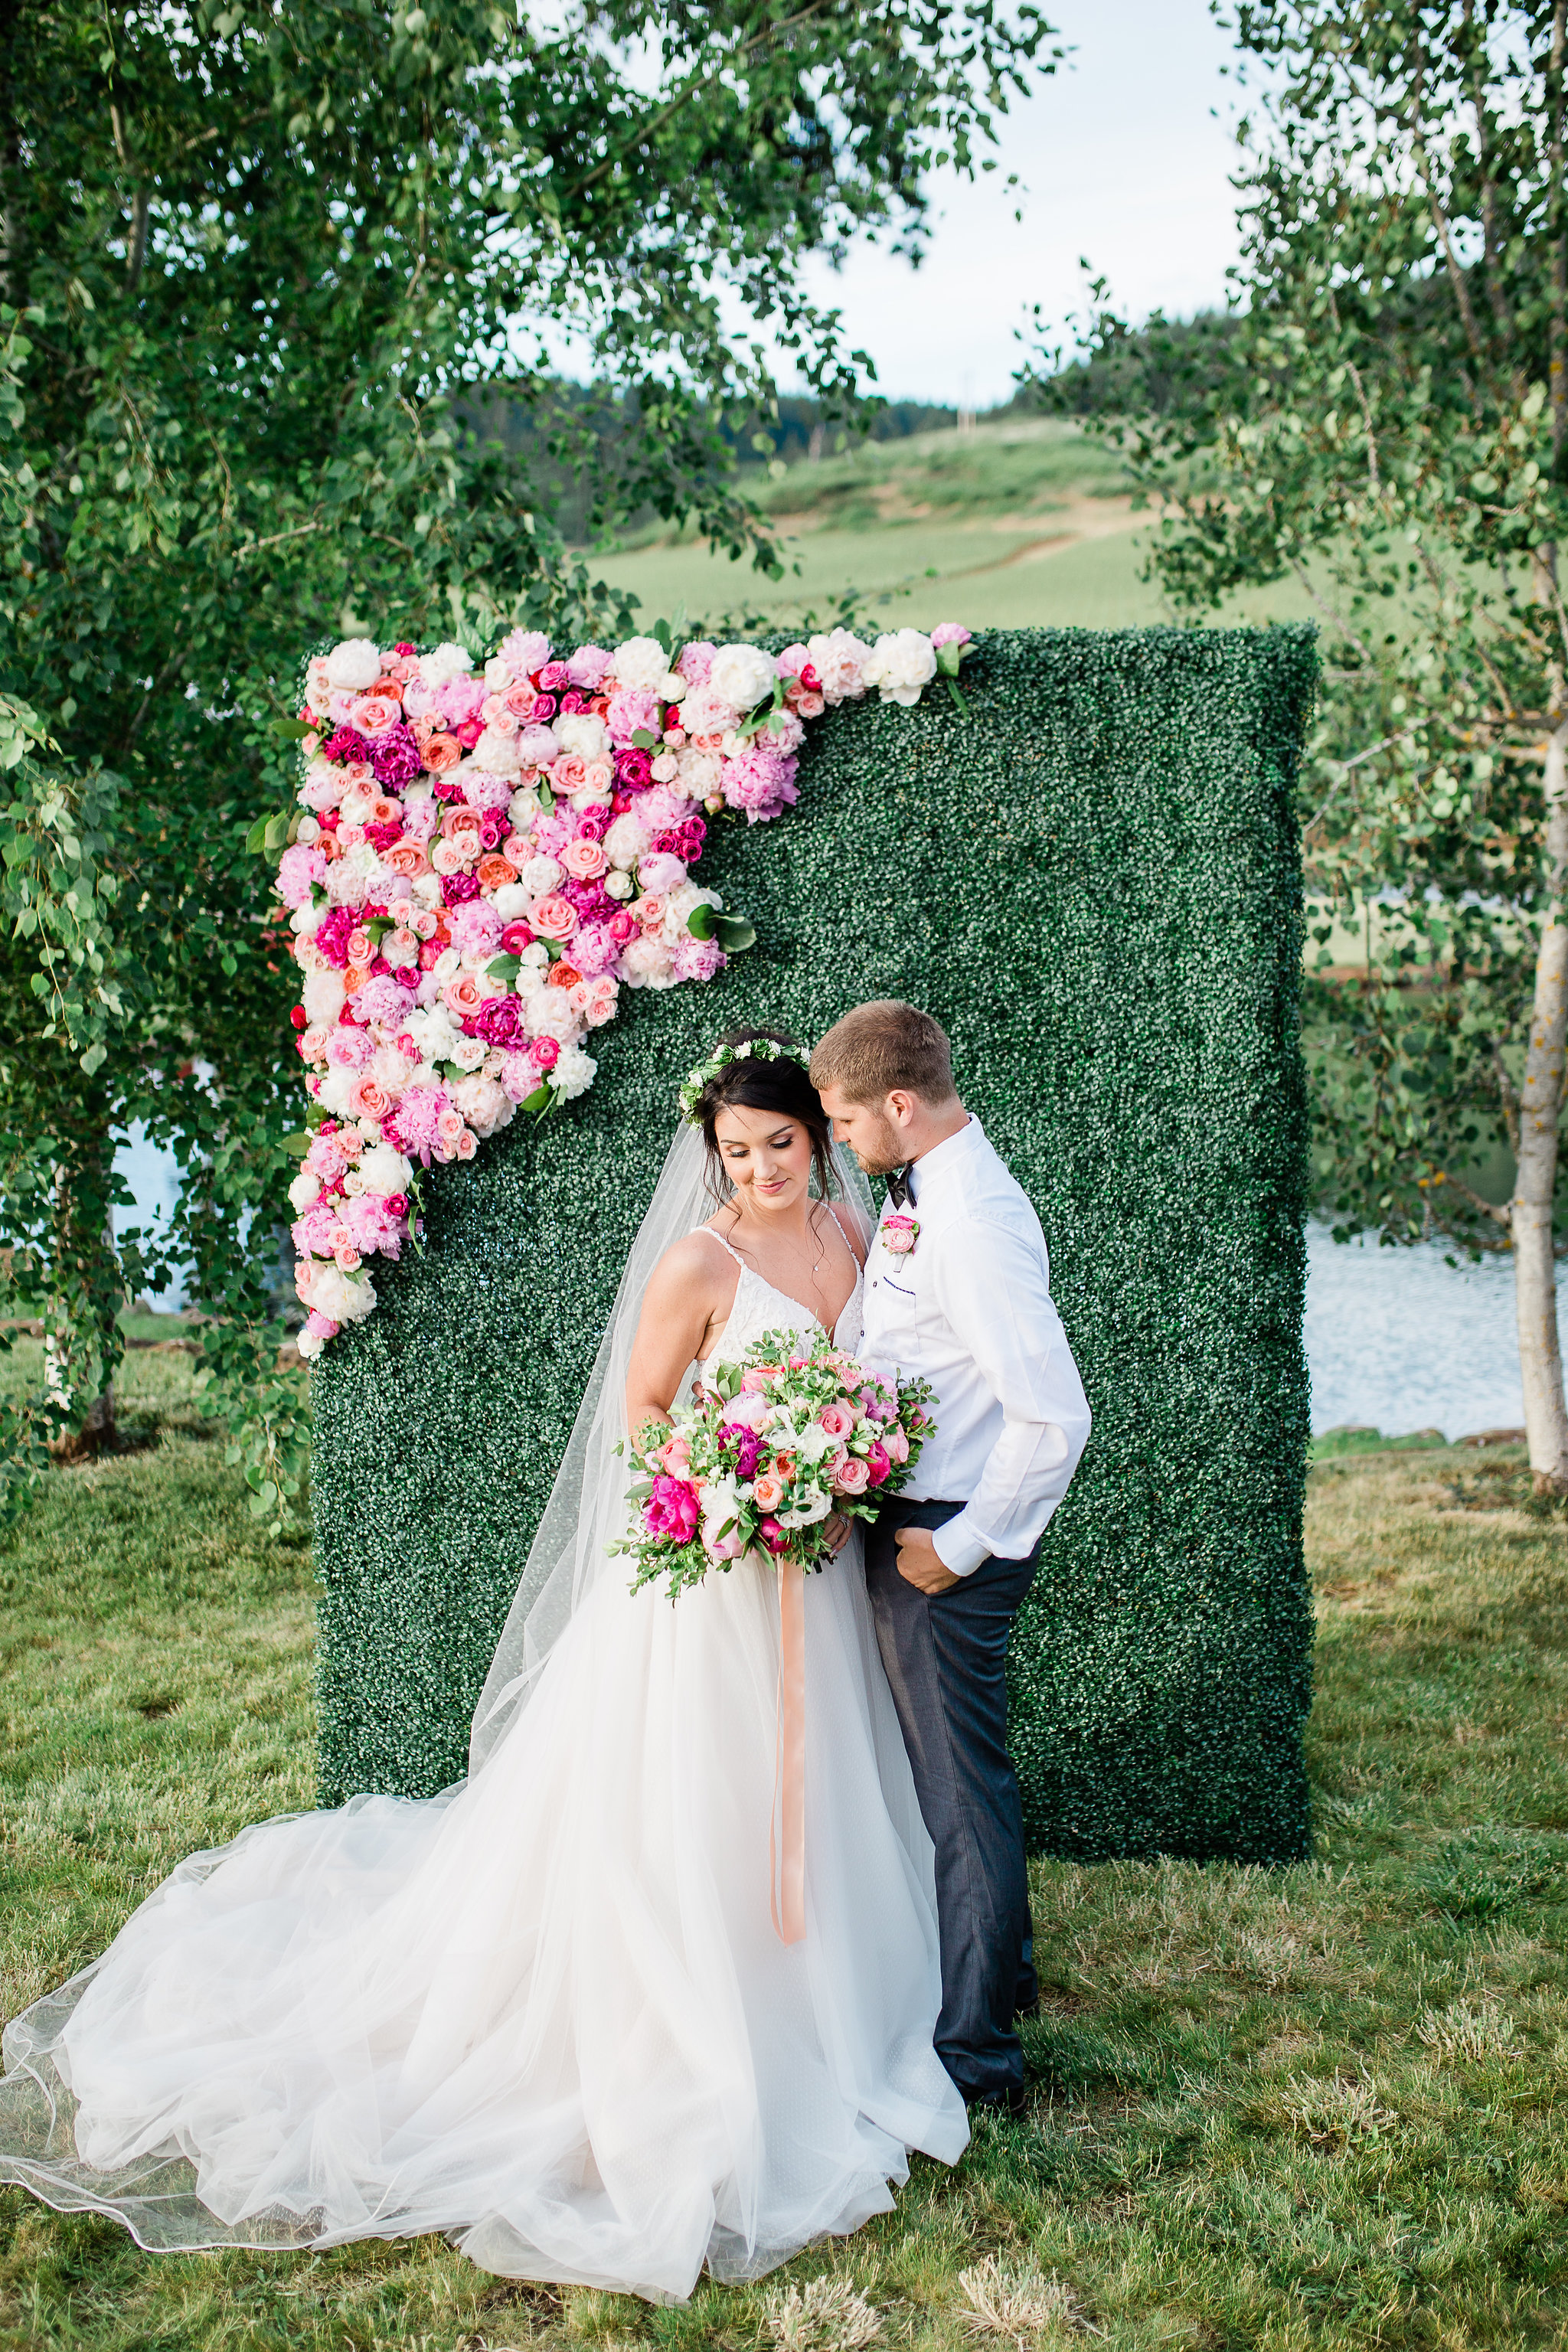 Peonies-and-Pinot-Wedding-Editorial-Eolla-Hills-Winery-Georgia-Ruth-Photography-98.jpg